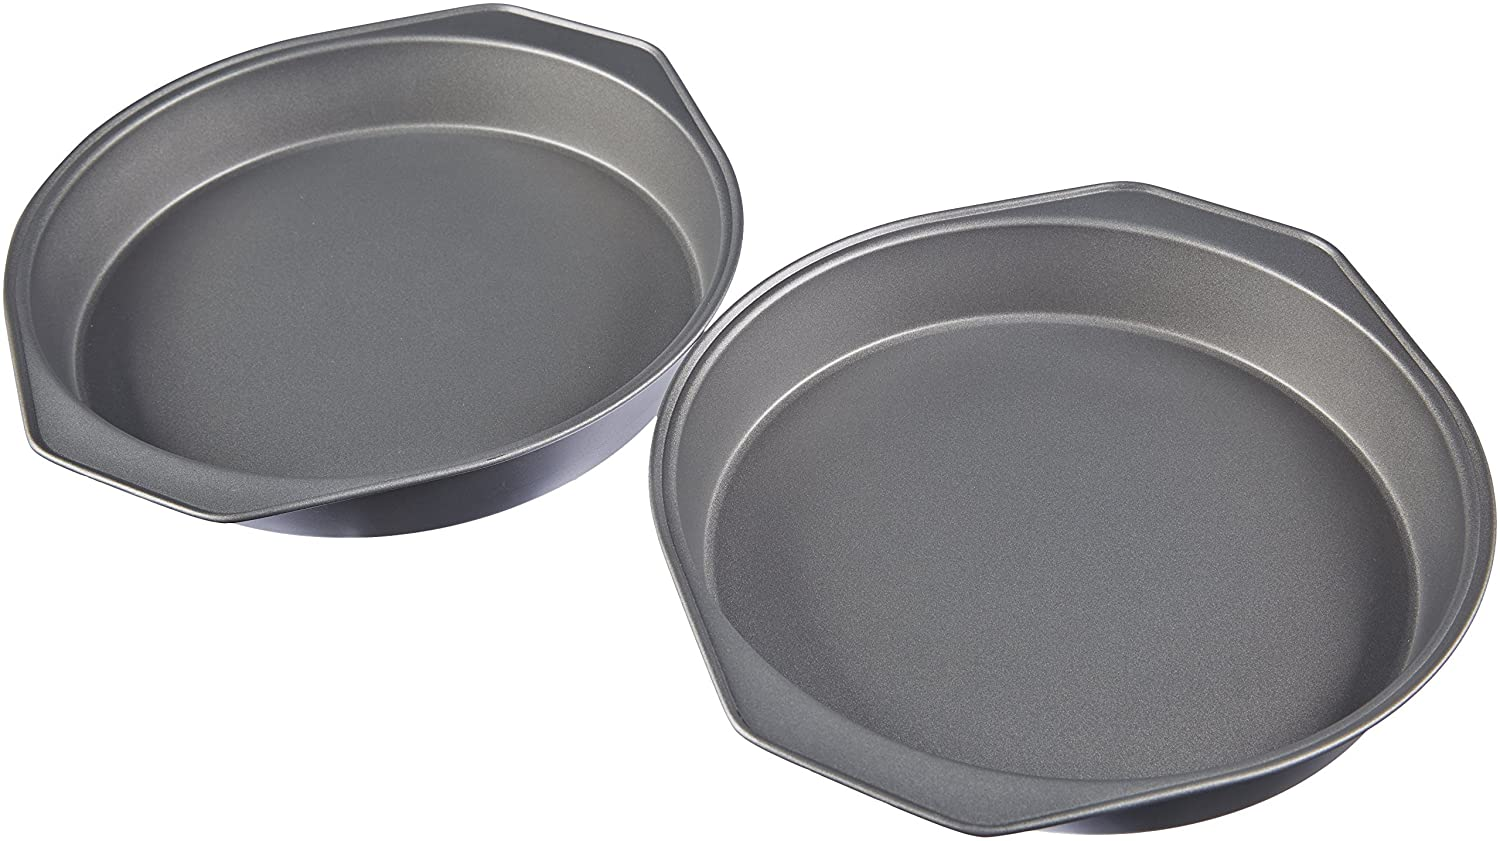 AmazonBasics Carbon Steel Cake Pan - 2-Pack 78177